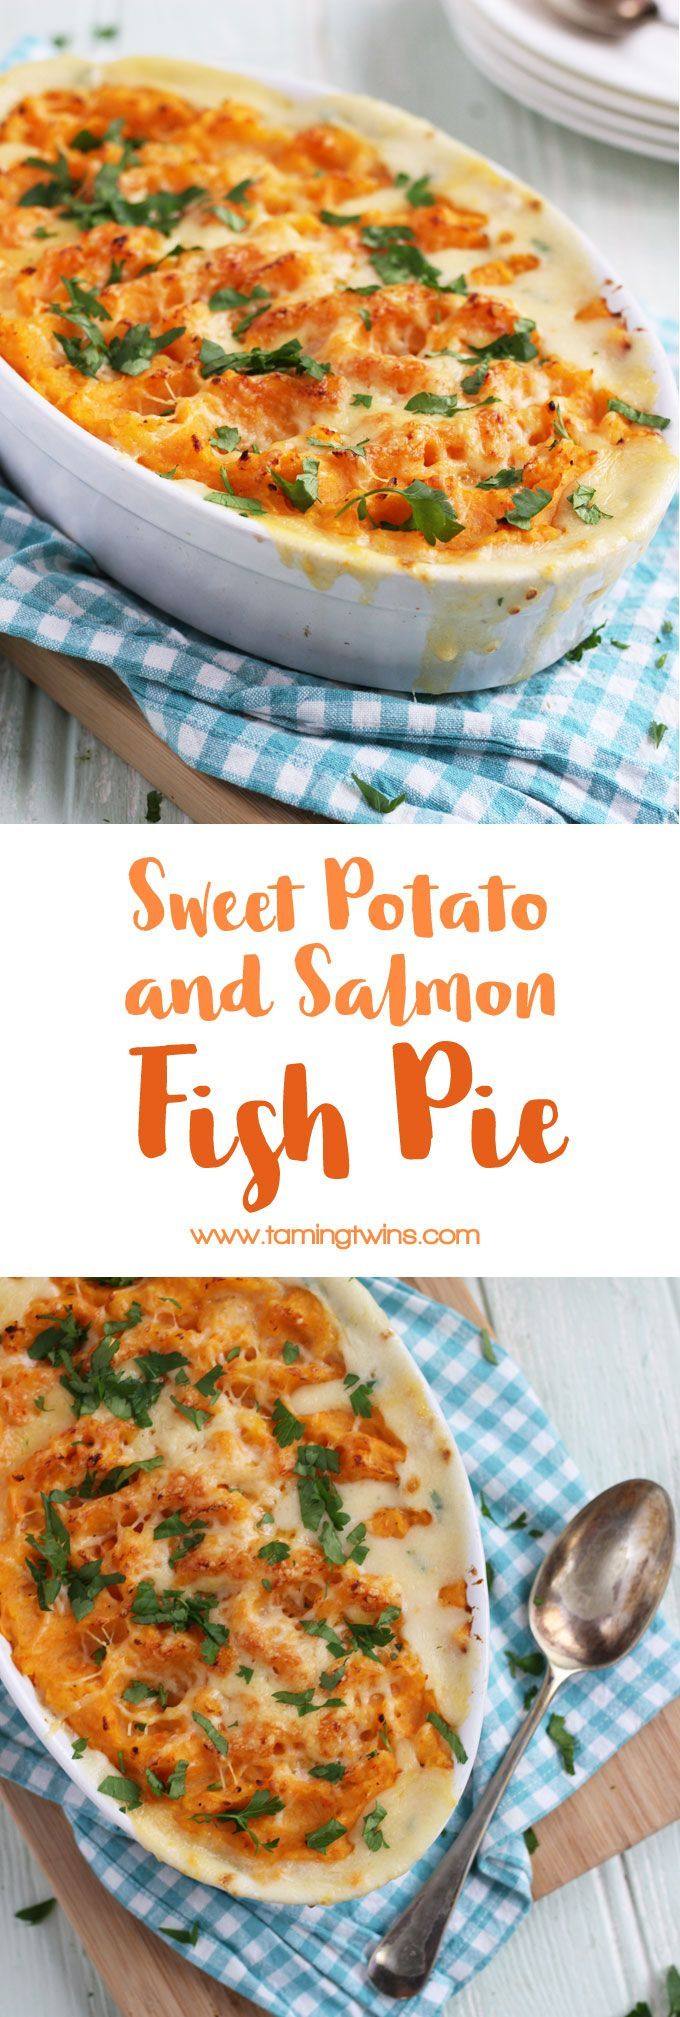 A tasty, family friendly sweet potato fish pie. Made with delicious salmon, prawns and parsley sauce. (Best Salmon Recipes)